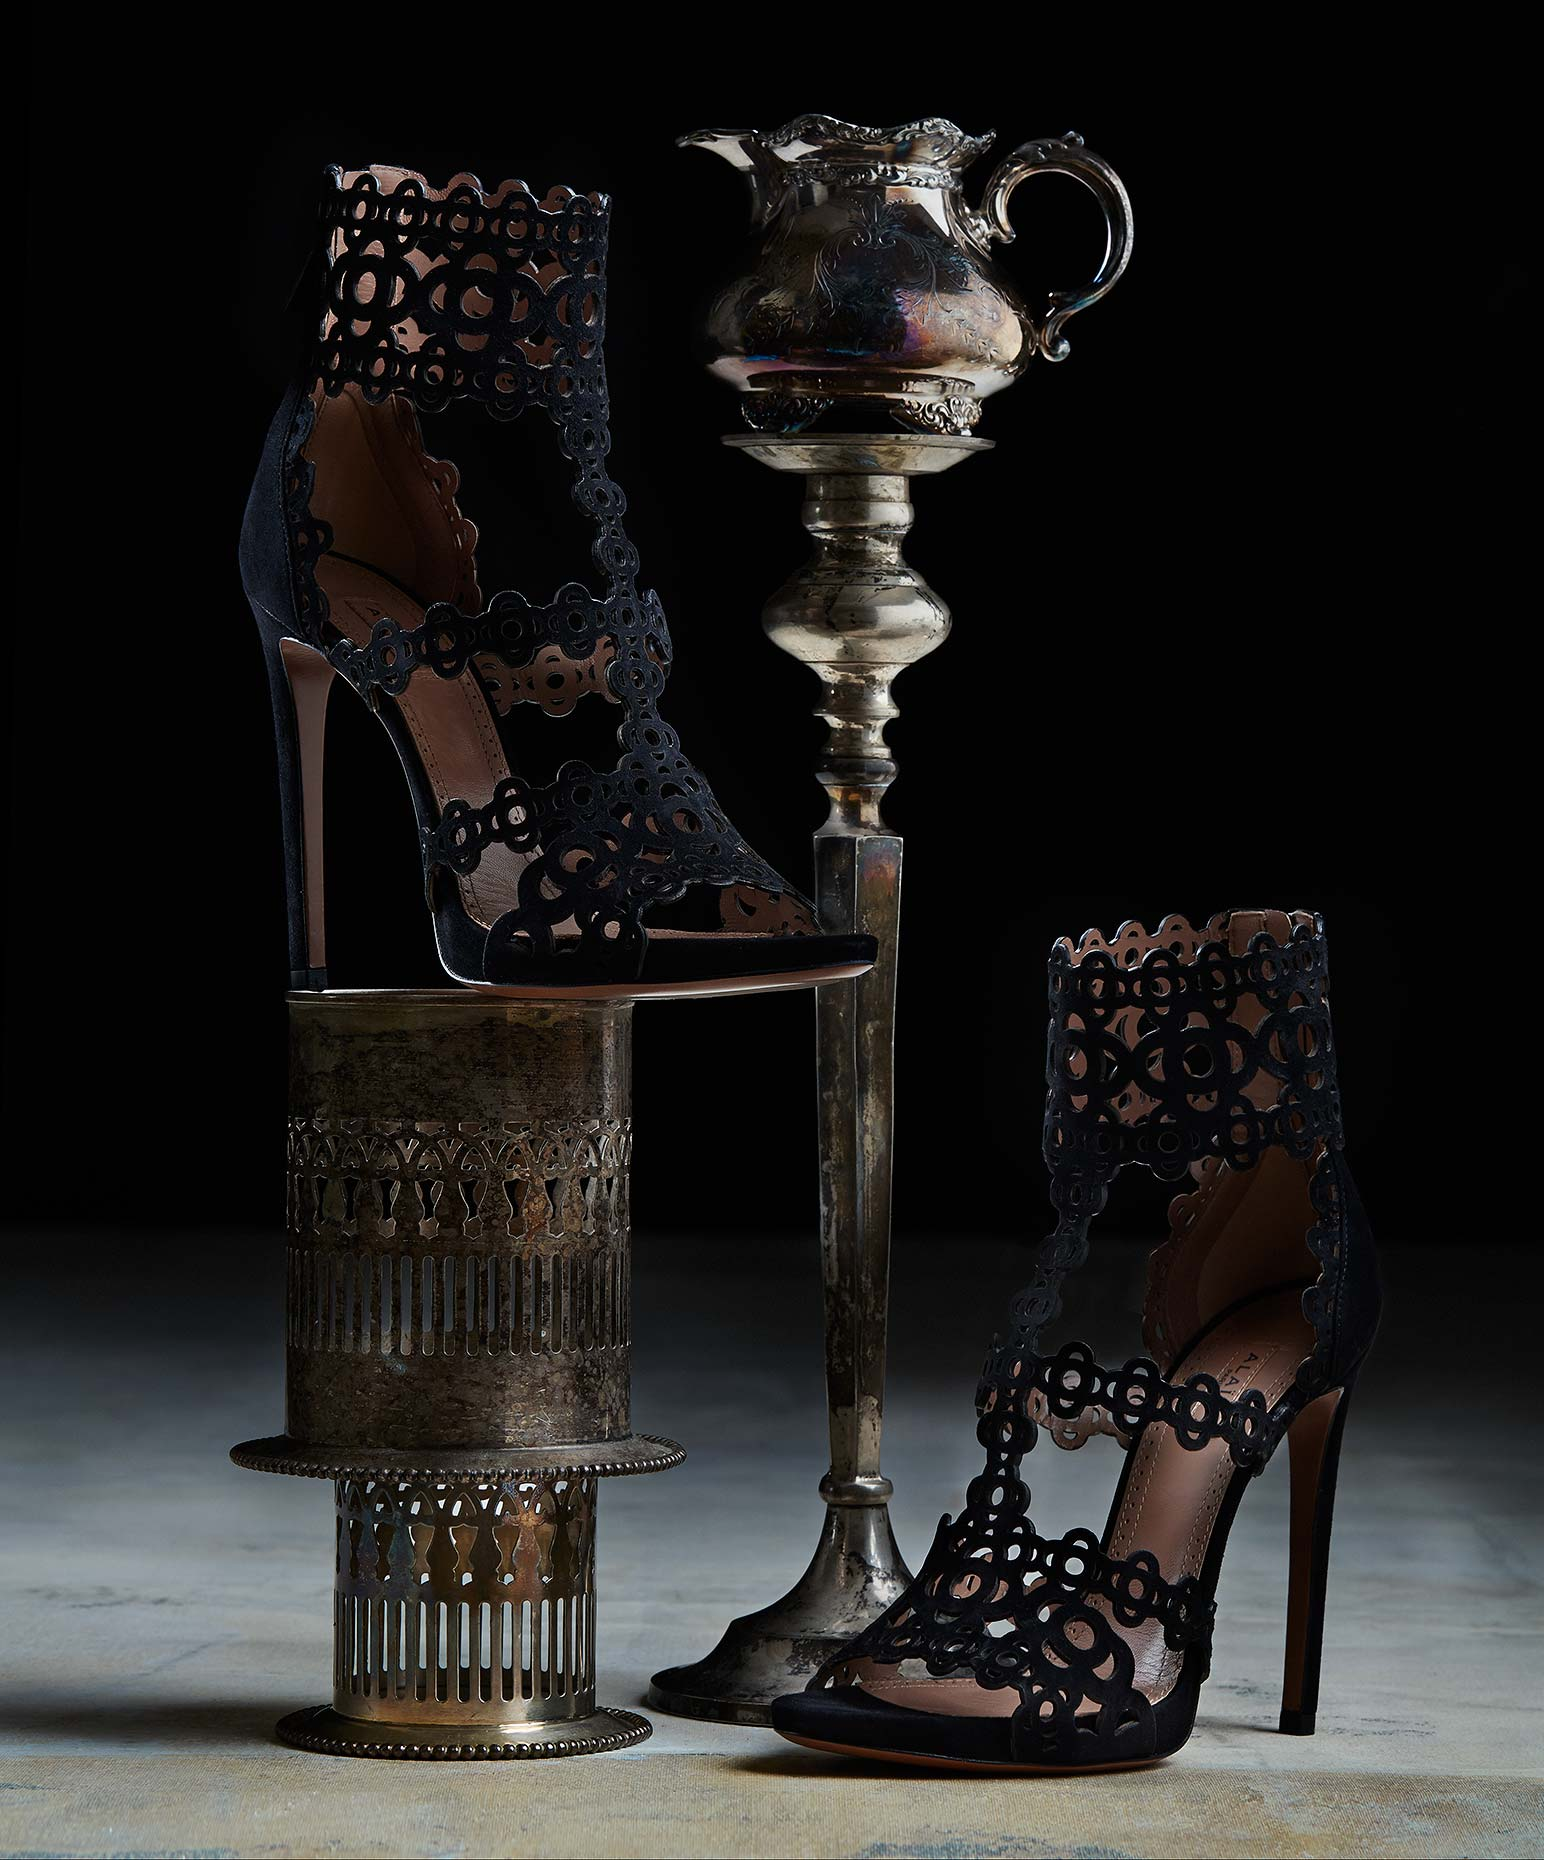 Tea set and heels still life photograph